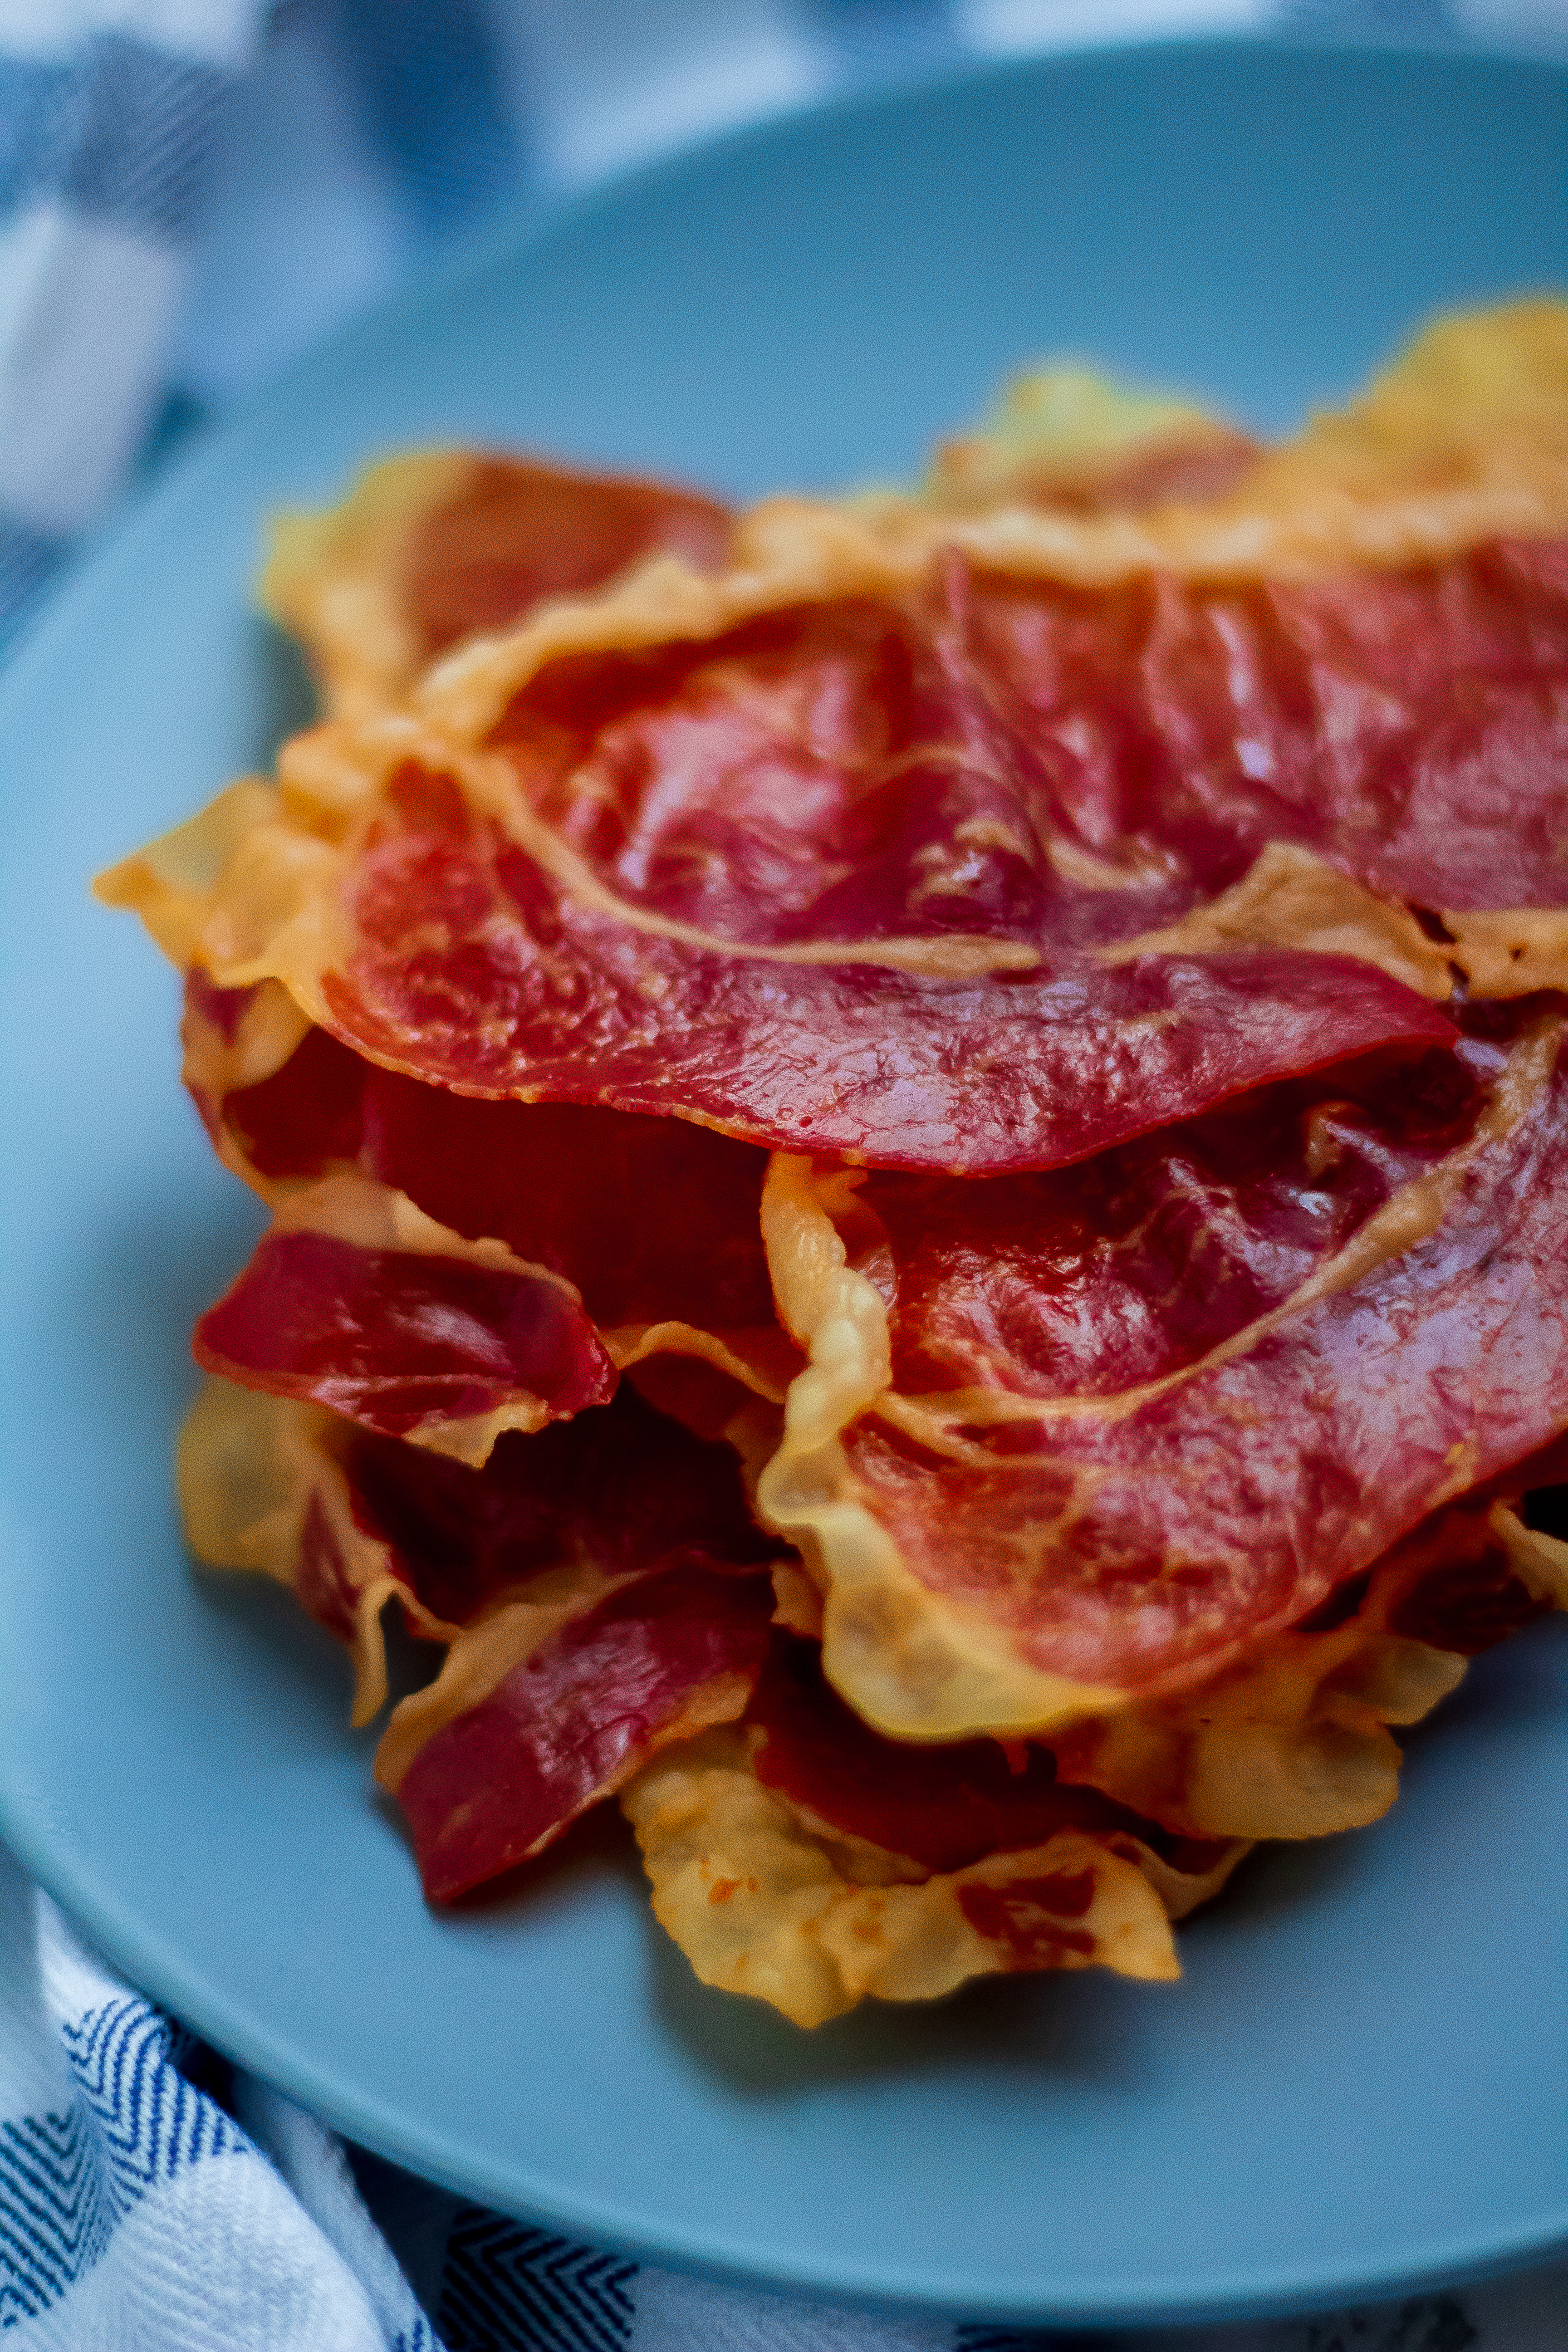 Crispy Prosciutto on a blue plate